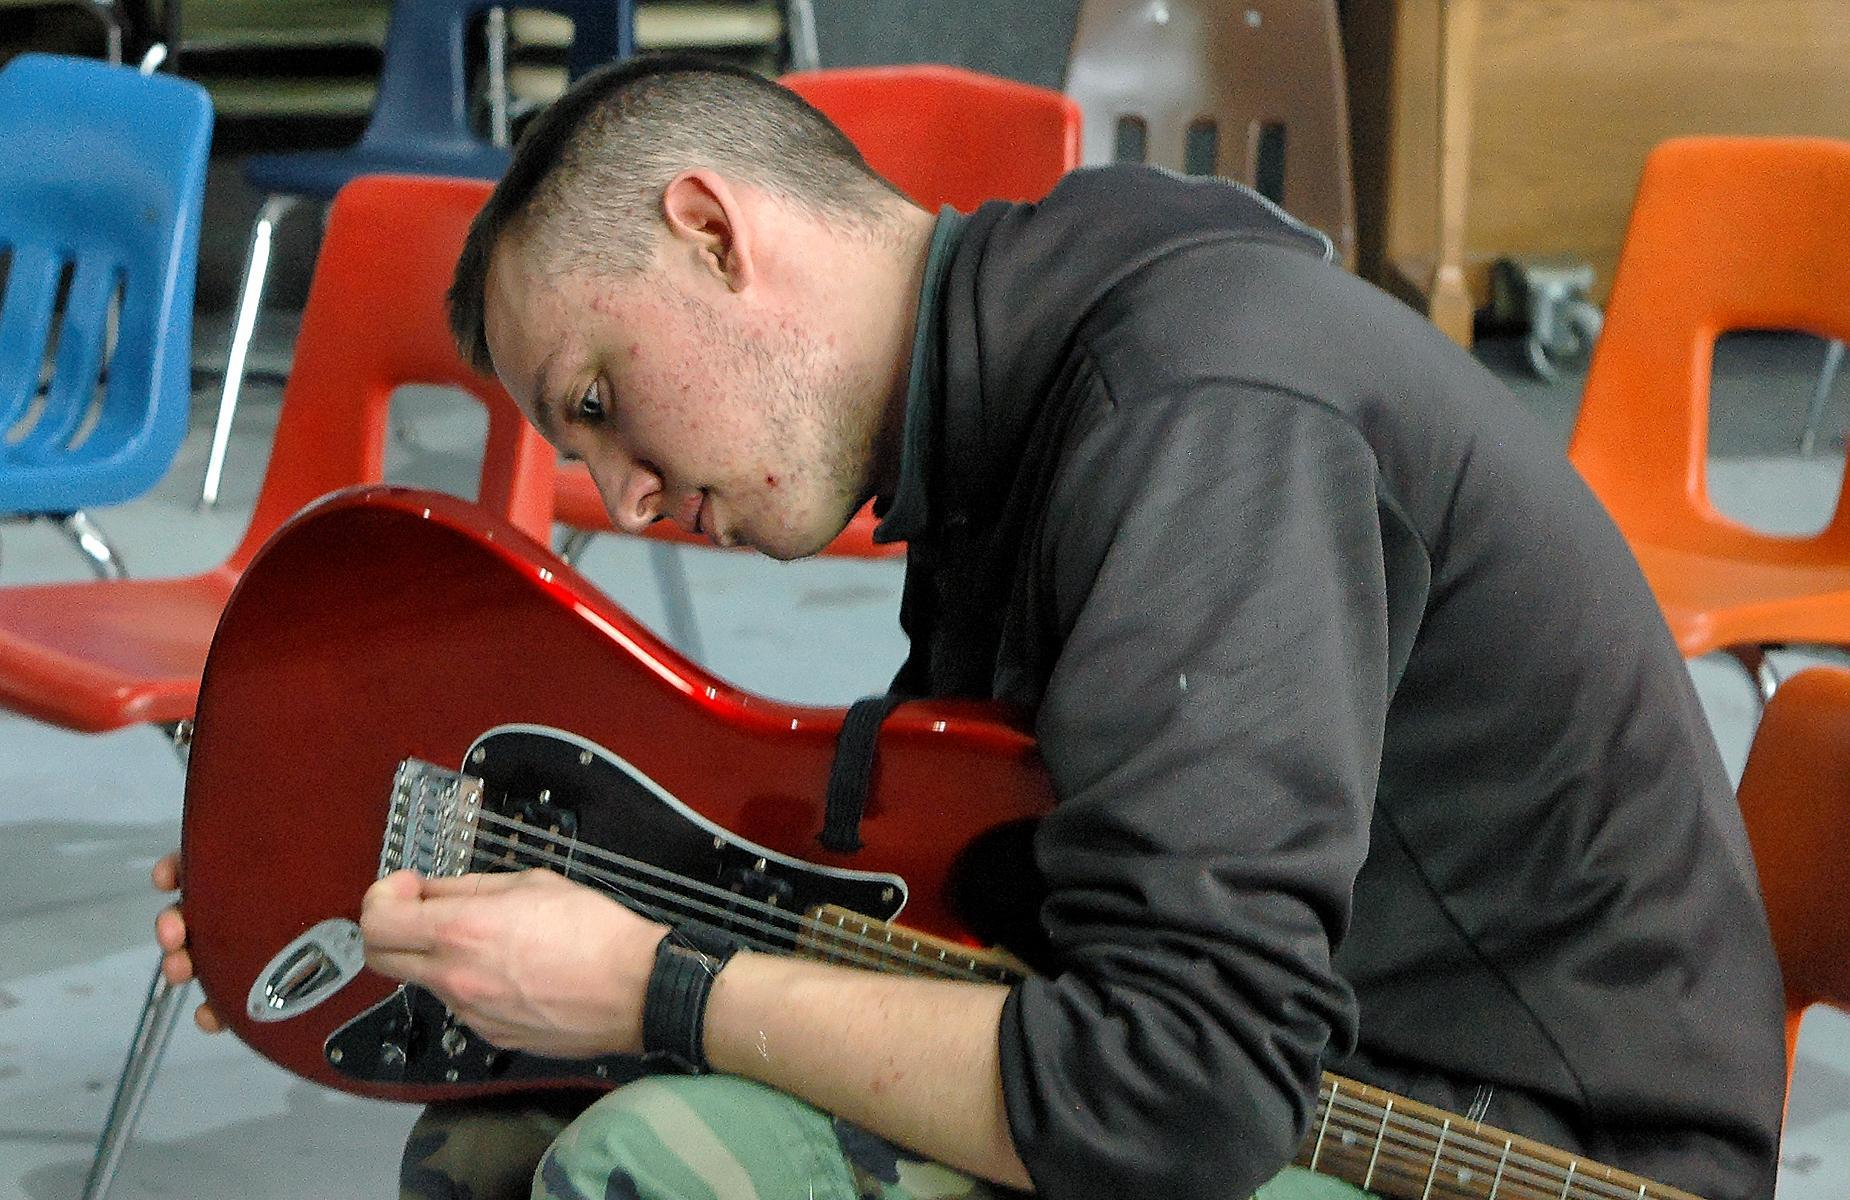 Student working on a guitar